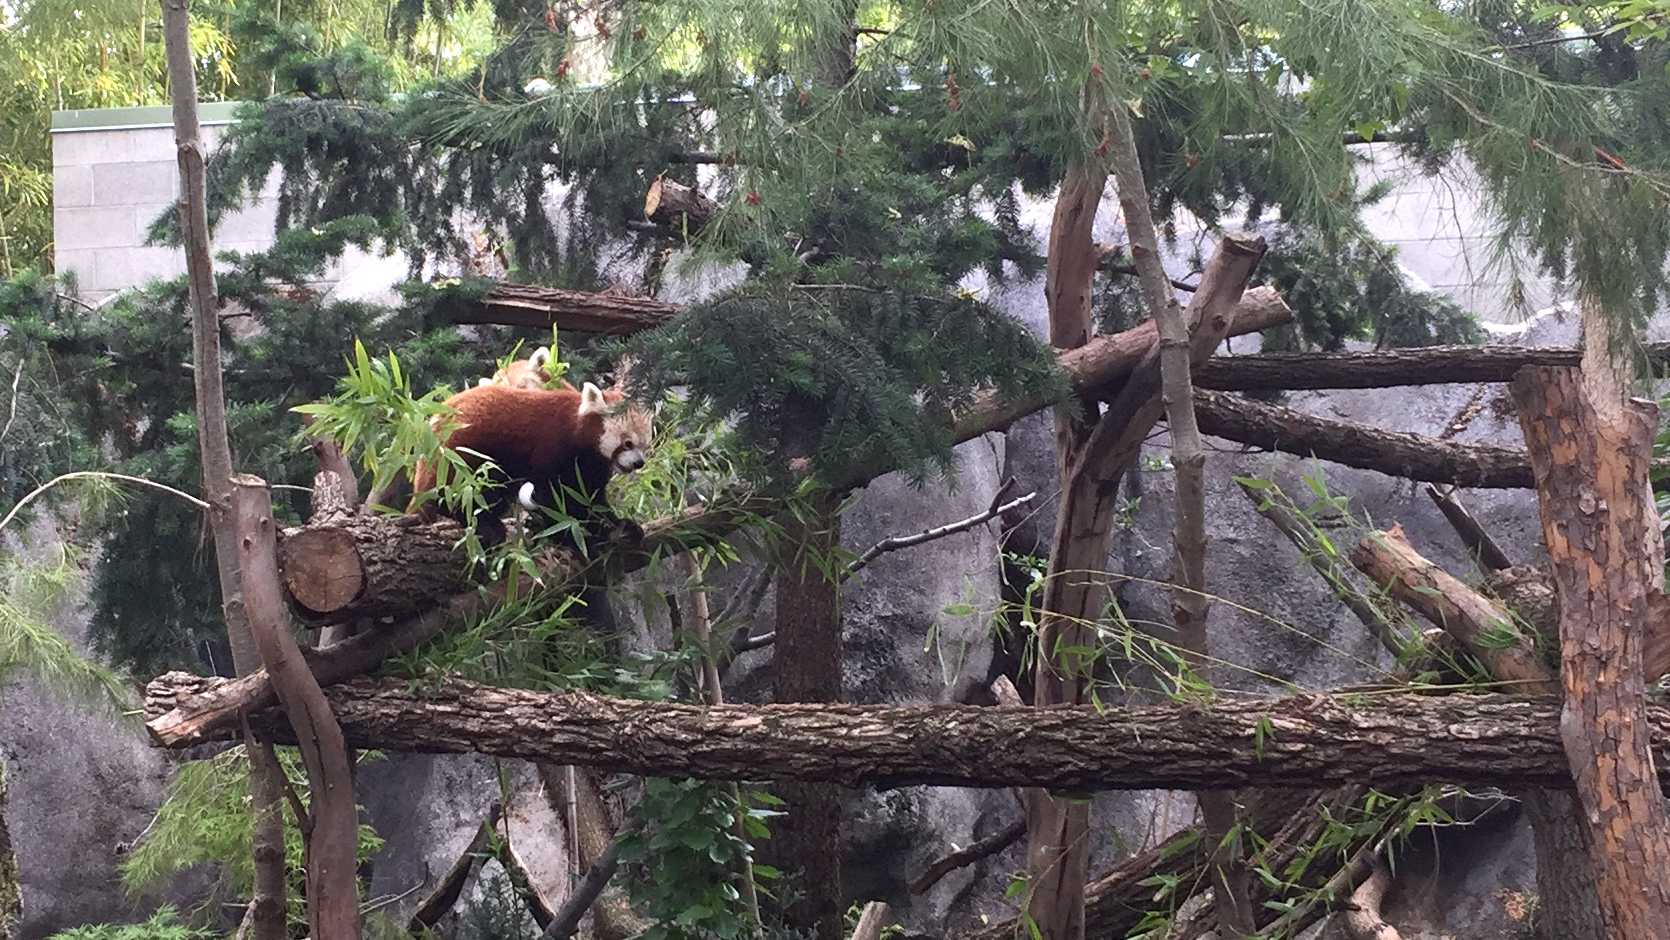 Two red pandas at the Sacramento Zoo eat bamboo in their exhibit.